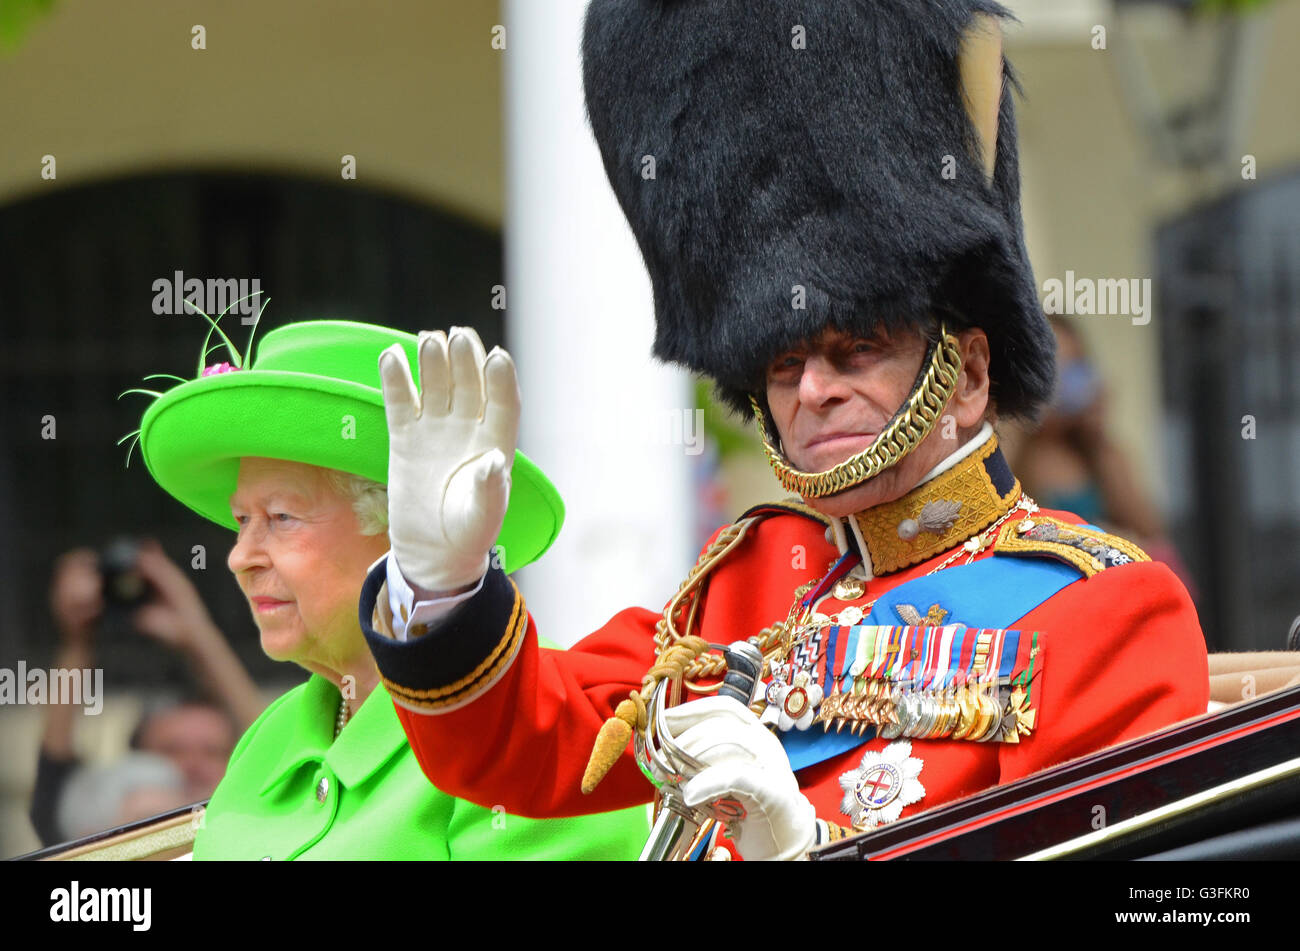 prince-philip-waving-during-trooping-the-colour-with-the-queen-in-G3FKR0.jpg